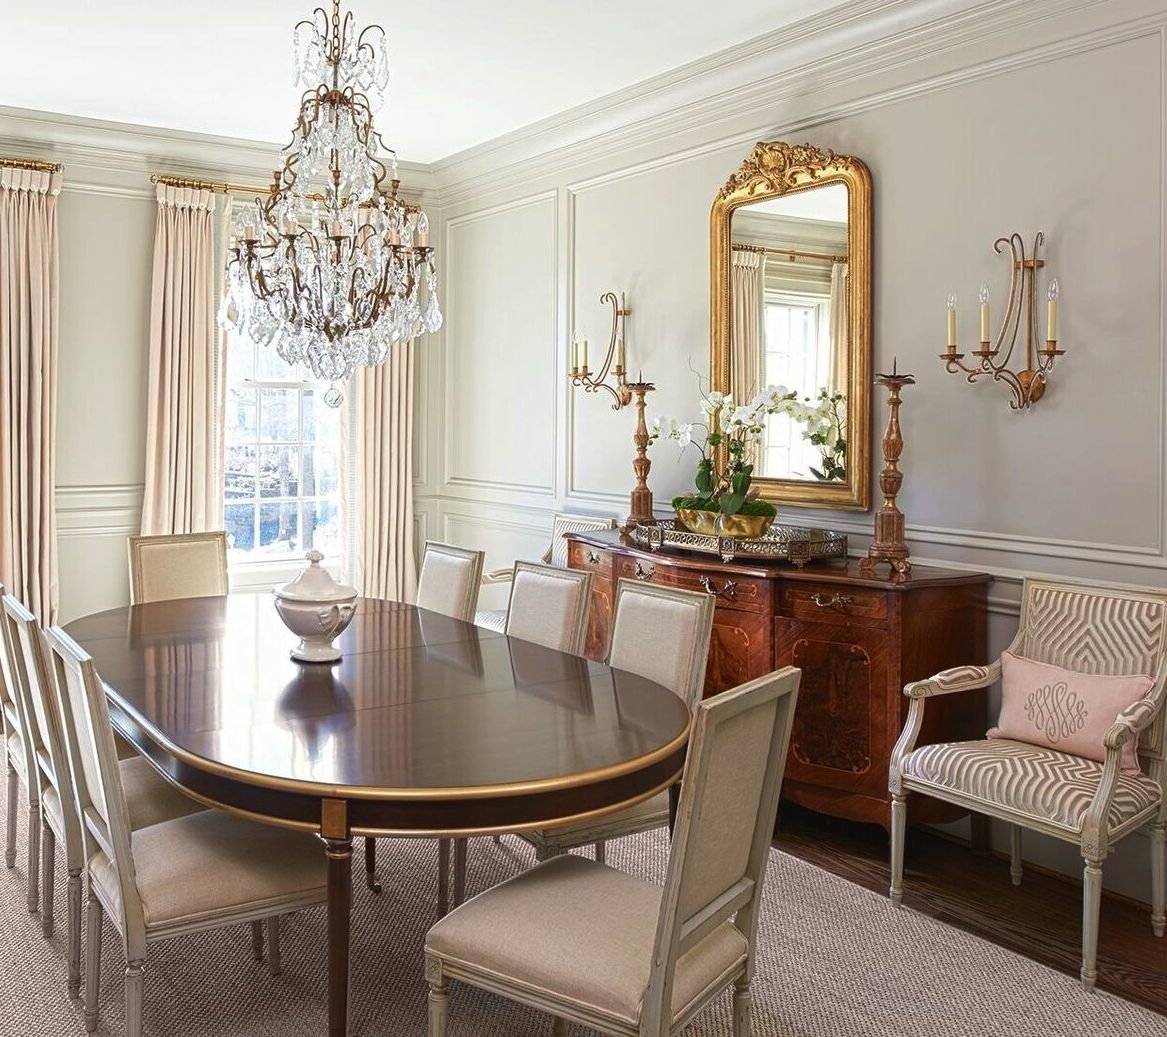 Schumacher fabric brings an elegant touch to the dining room on window treatments and upholstered chairs. The table is from Hickory Chair.